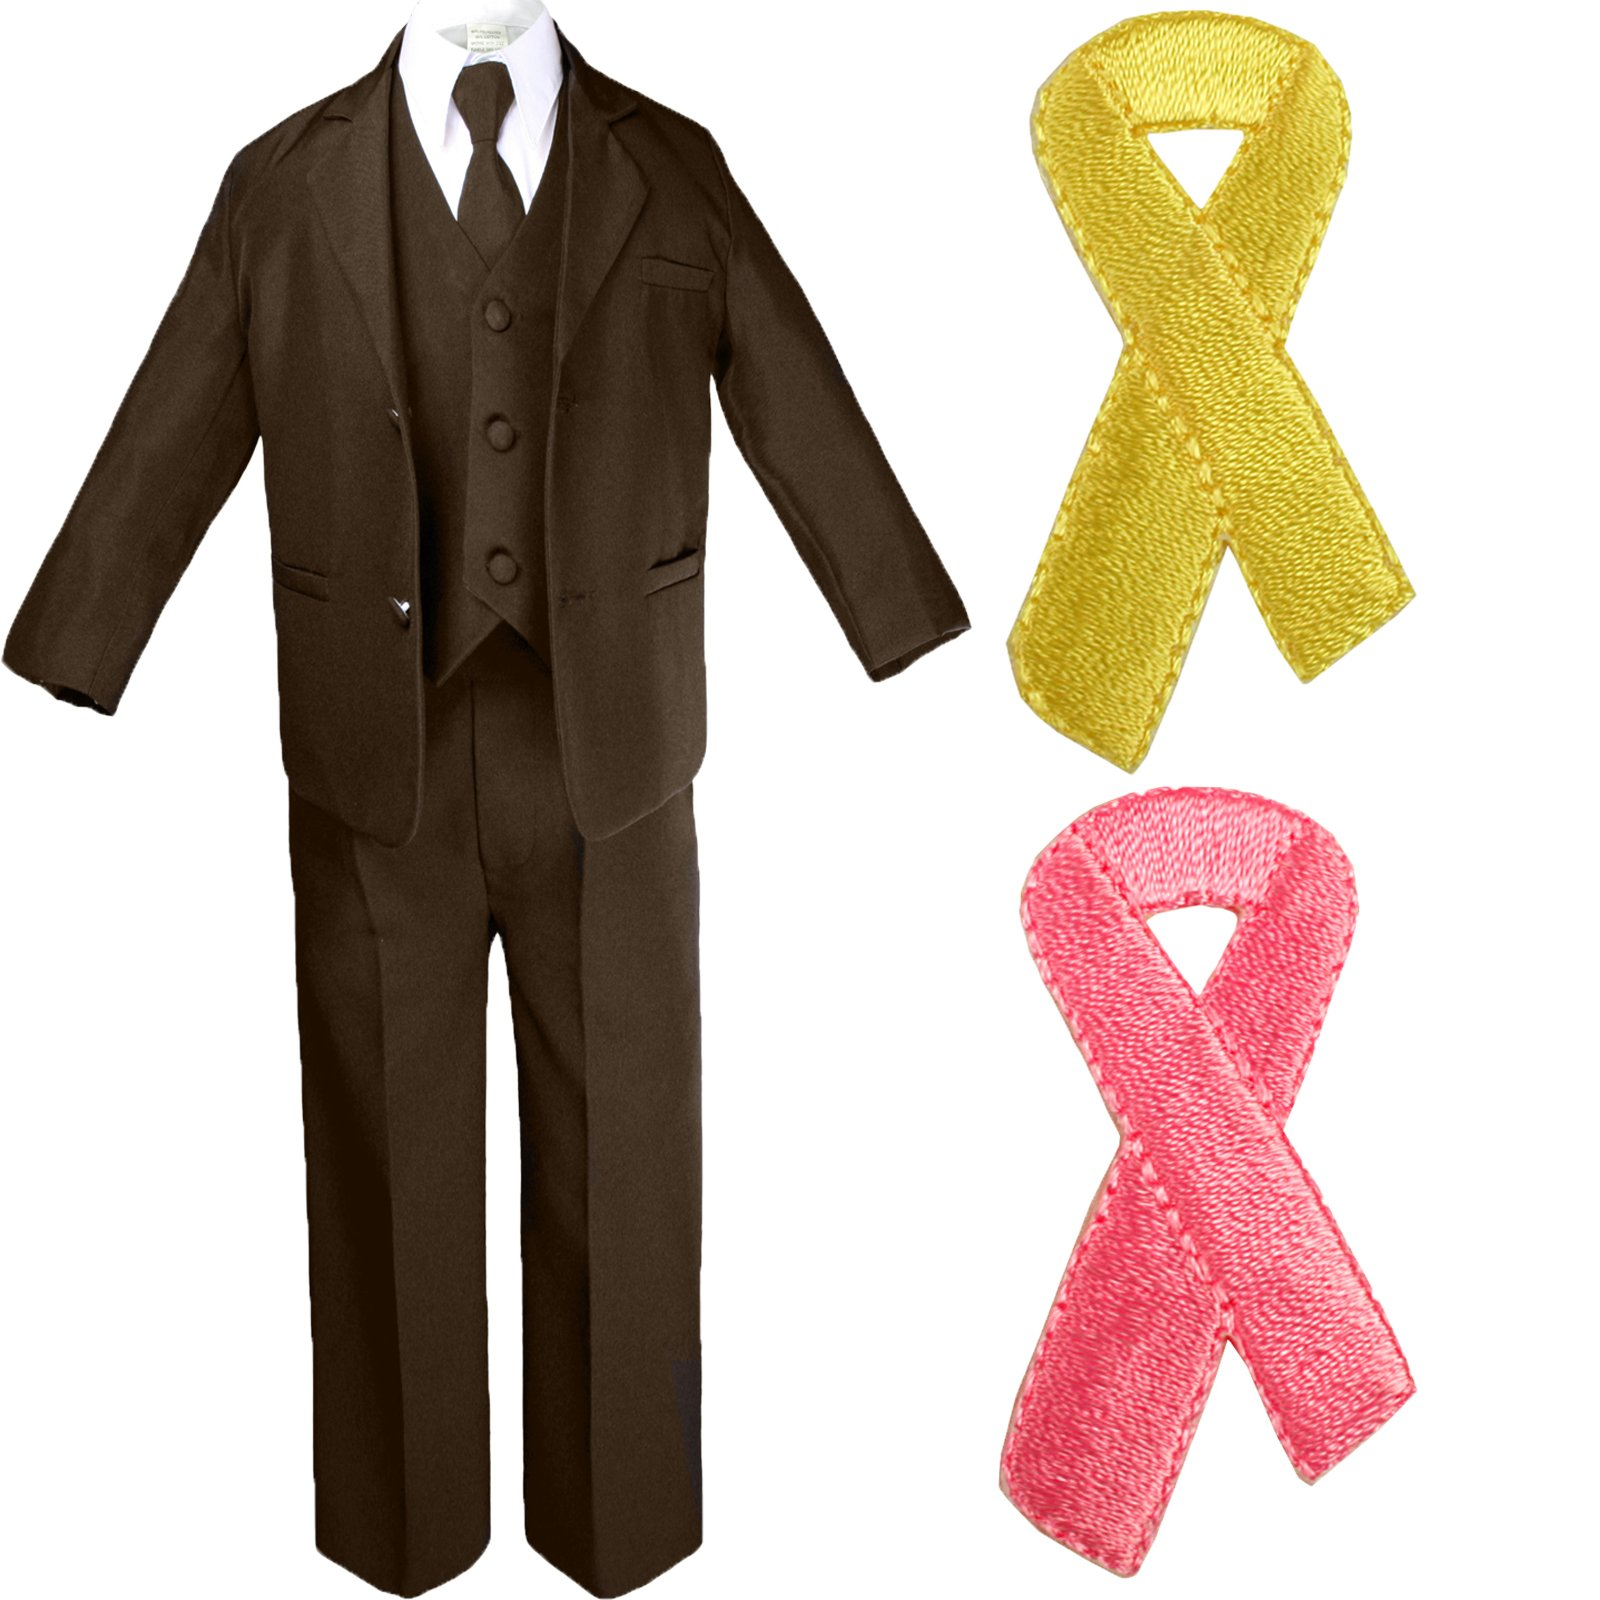 5pc Baby Boy Teen BROWN SUIT w/ Cancer Awareness Ribbon Adhesive LOVE HOPE Patch (2T, Add Yellow Ribbon)